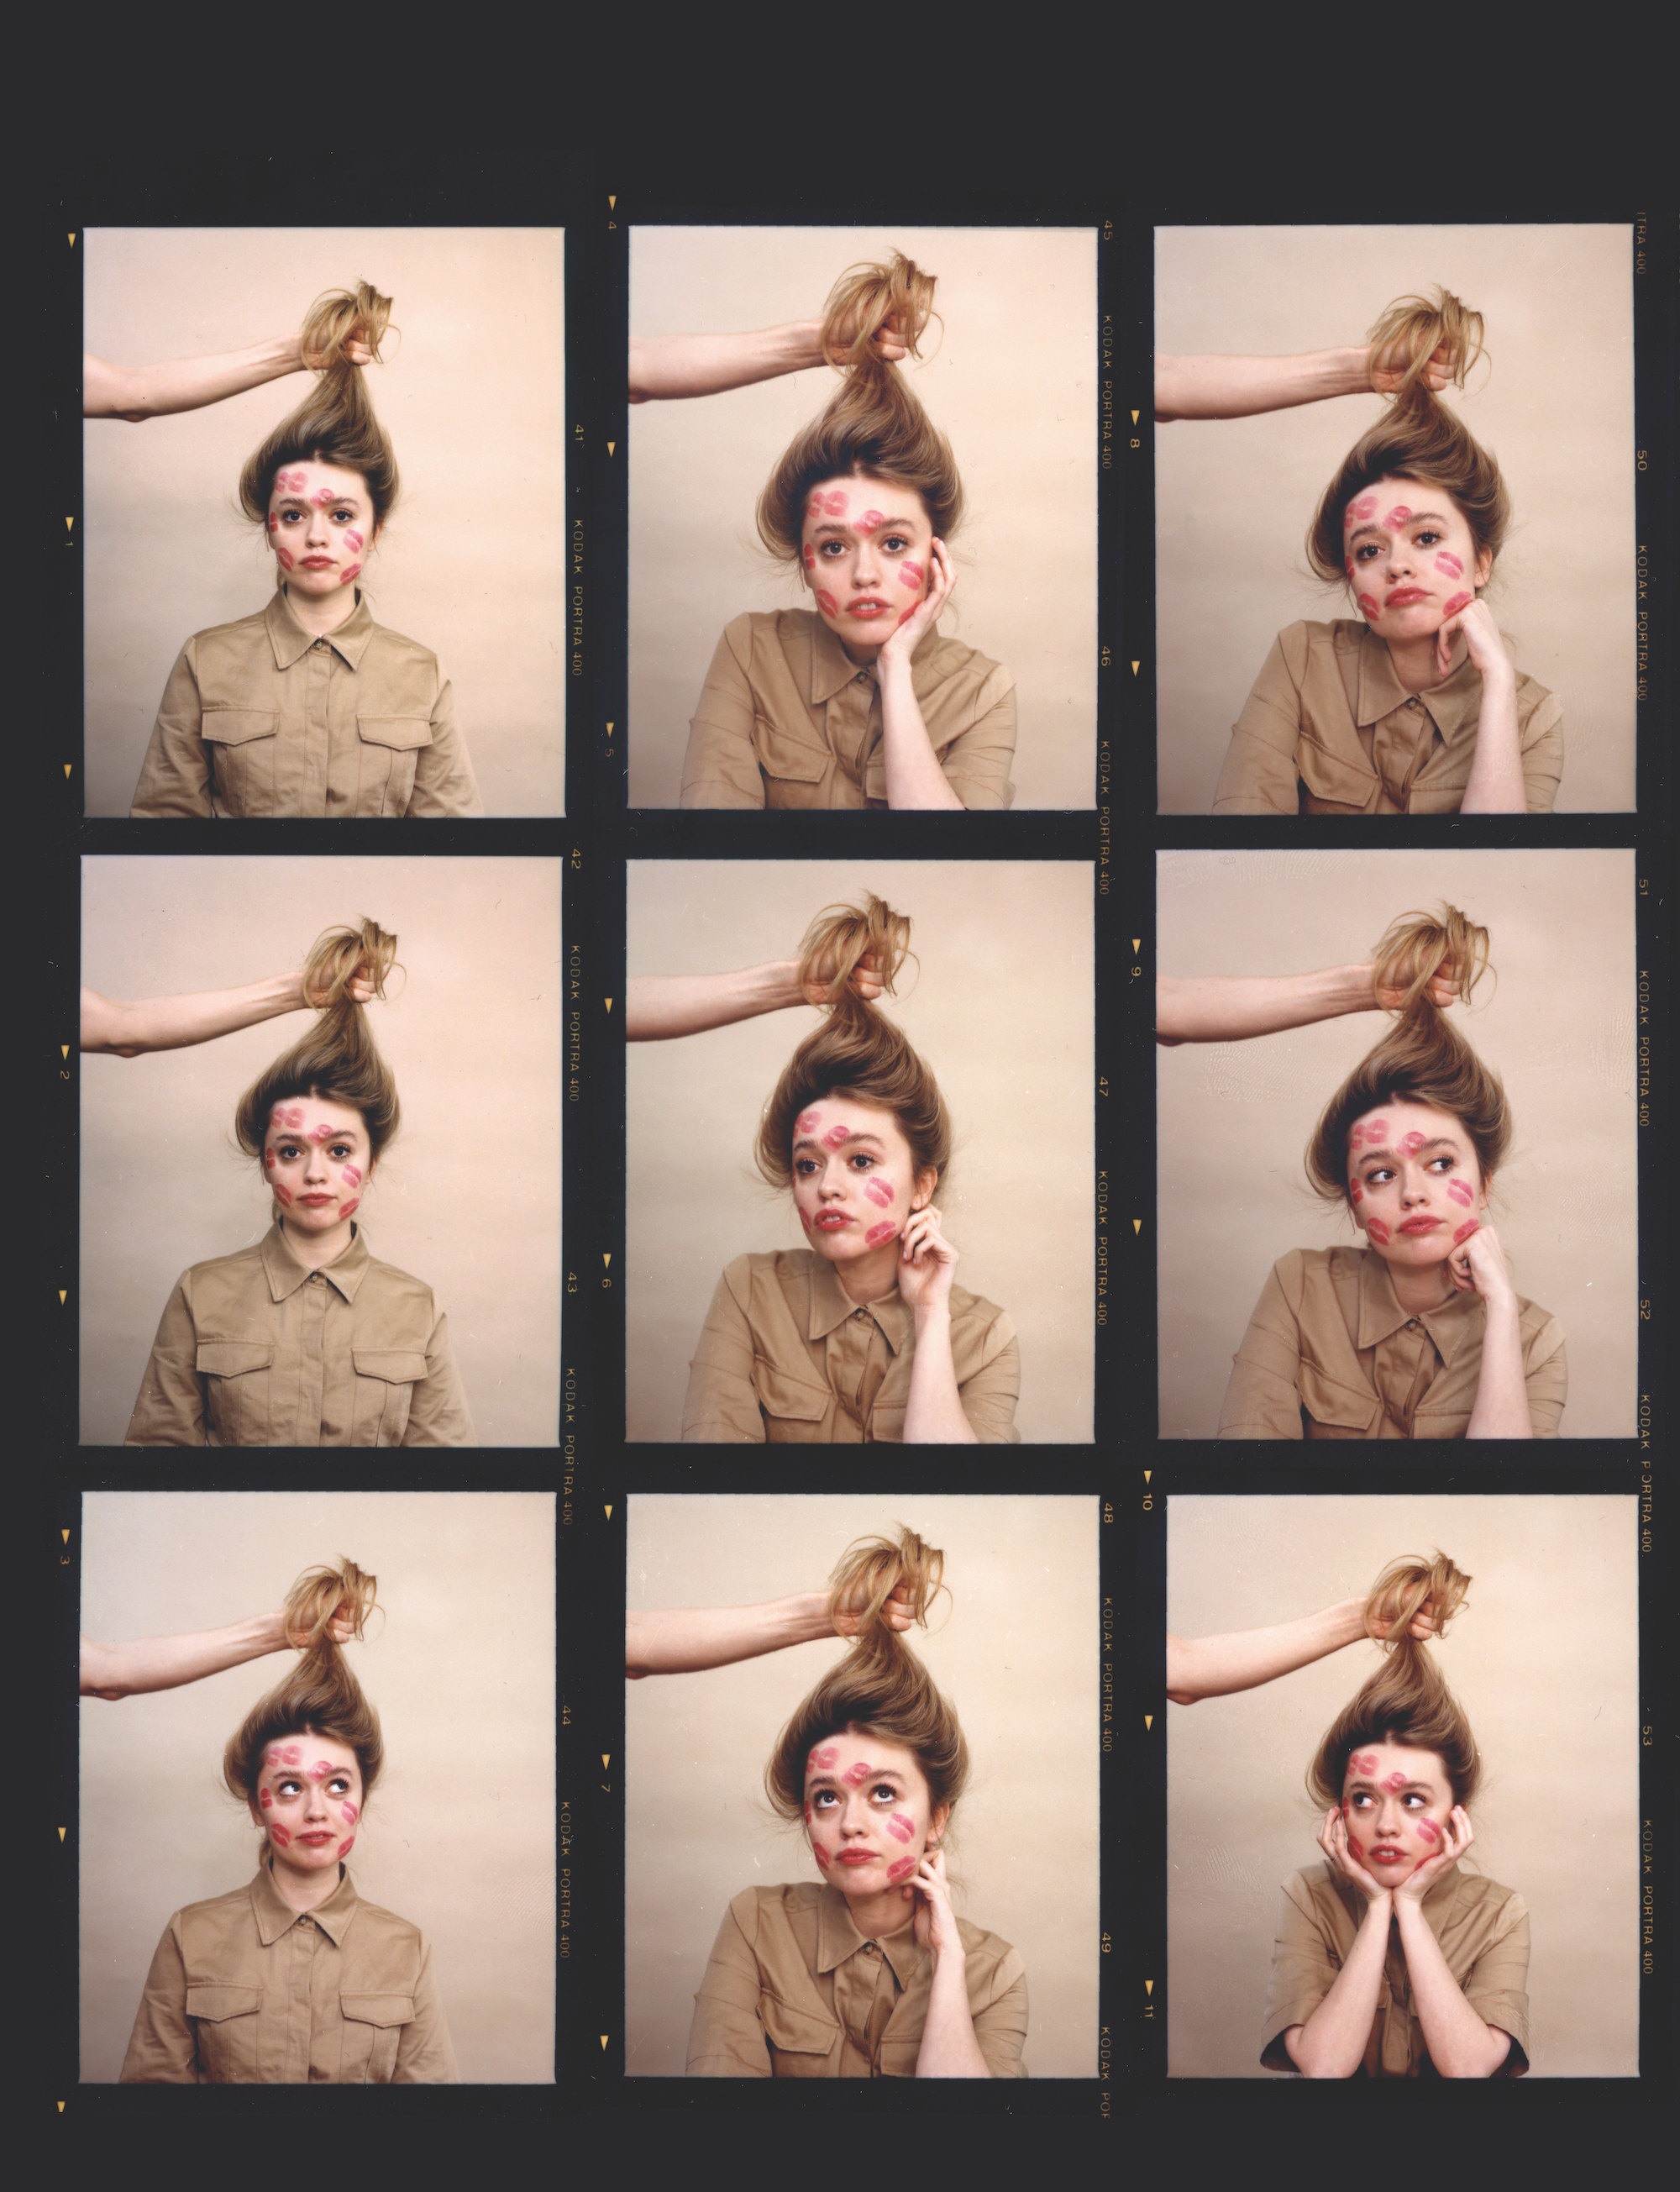 Aimee Lou Wood with various hairstyles and shirt